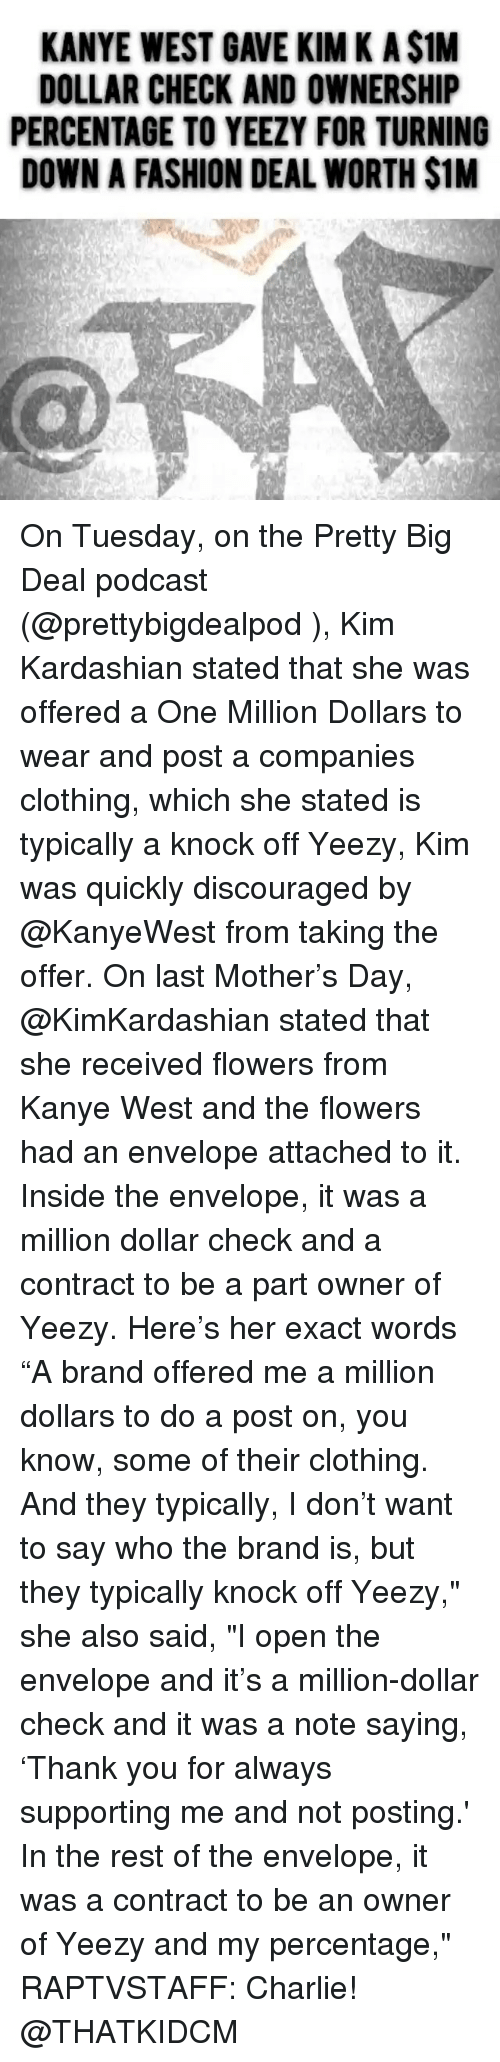 """Charlie, Fashion, and Kanye: KANYE WEST GAVE KIM K A $1M  DOLLAR CHECK AND OWNERSHIP  PERCENTAGE TO YEEZY FOR TURNING  DOWN A FASHION DEAL WORTH $1M On Tuesday, on the Pretty Big Deal podcast (@prettybigdealpod ), Kim Kardashian stated that she was offered a One Million Dollars to wear and post a companies clothing, which she stated is typically a knock off Yeezy, Kim was quickly discouraged by @KanyeWest from taking the offer. On last Mother's Day, @KimKardashian stated that she received flowers from Kanye West and the flowers had an envelope attached to it. Inside the envelope, it was a million dollar check and a contract to be a part owner of Yeezy. Here's her exact words """"A brand offered me a million dollars to do a post on, you know, some of their clothing. And they typically, I don't want to say who the brand is, but they typically knock off Yeezy,"""" she also said, """"I open the envelope and it's a million-dollar check and it was a note saying, 'Thank you for always supporting me and not posting.' In the rest of the envelope, it was a contract to be an owner of Yeezy and my percentage,"""" RAPTVSTAFF: Charlie! @THATKIDCM"""